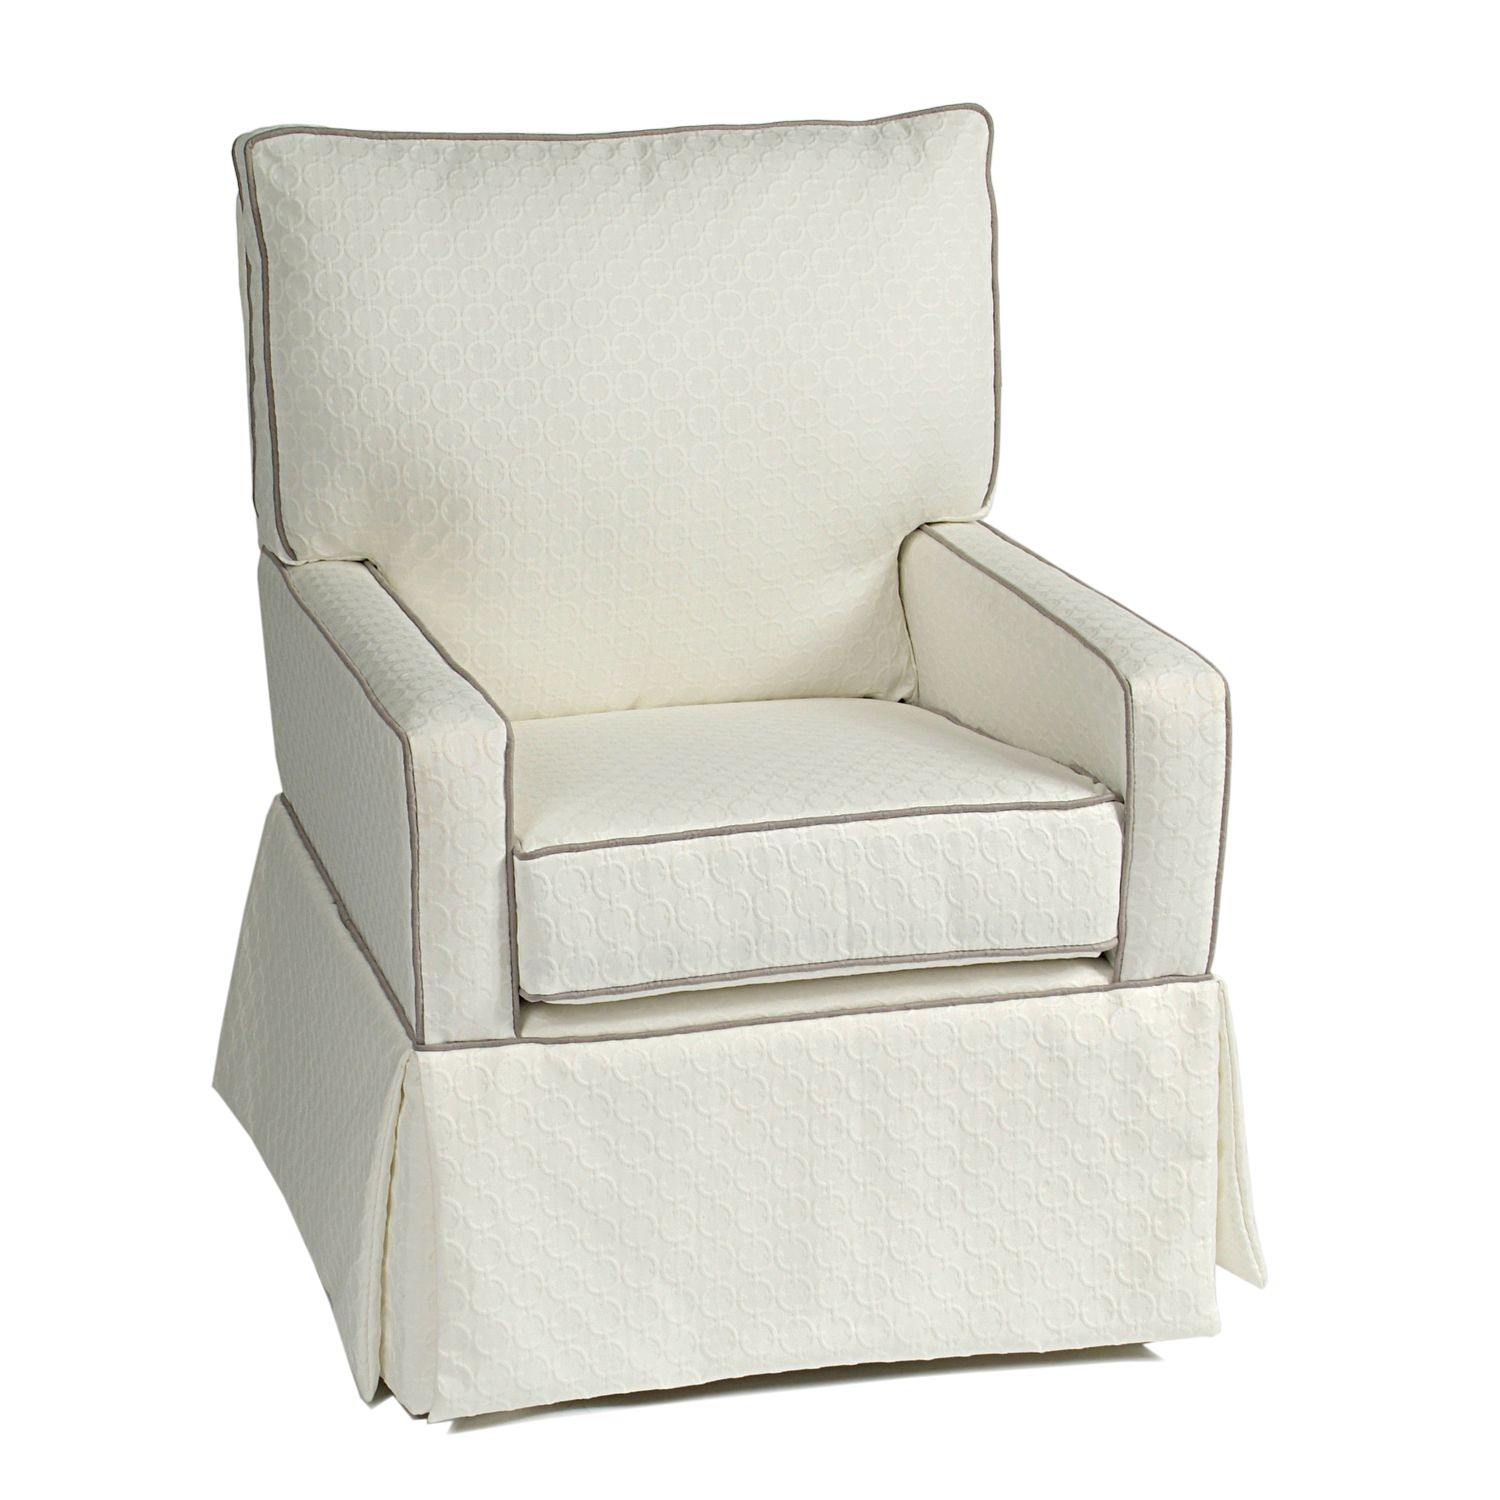 Little Castle Mesa Glider   Links White With Grey Piping   Add Style And  Comfort To Your Nursery With The Little Castle Mesa Glider   Links White  With Grey ...